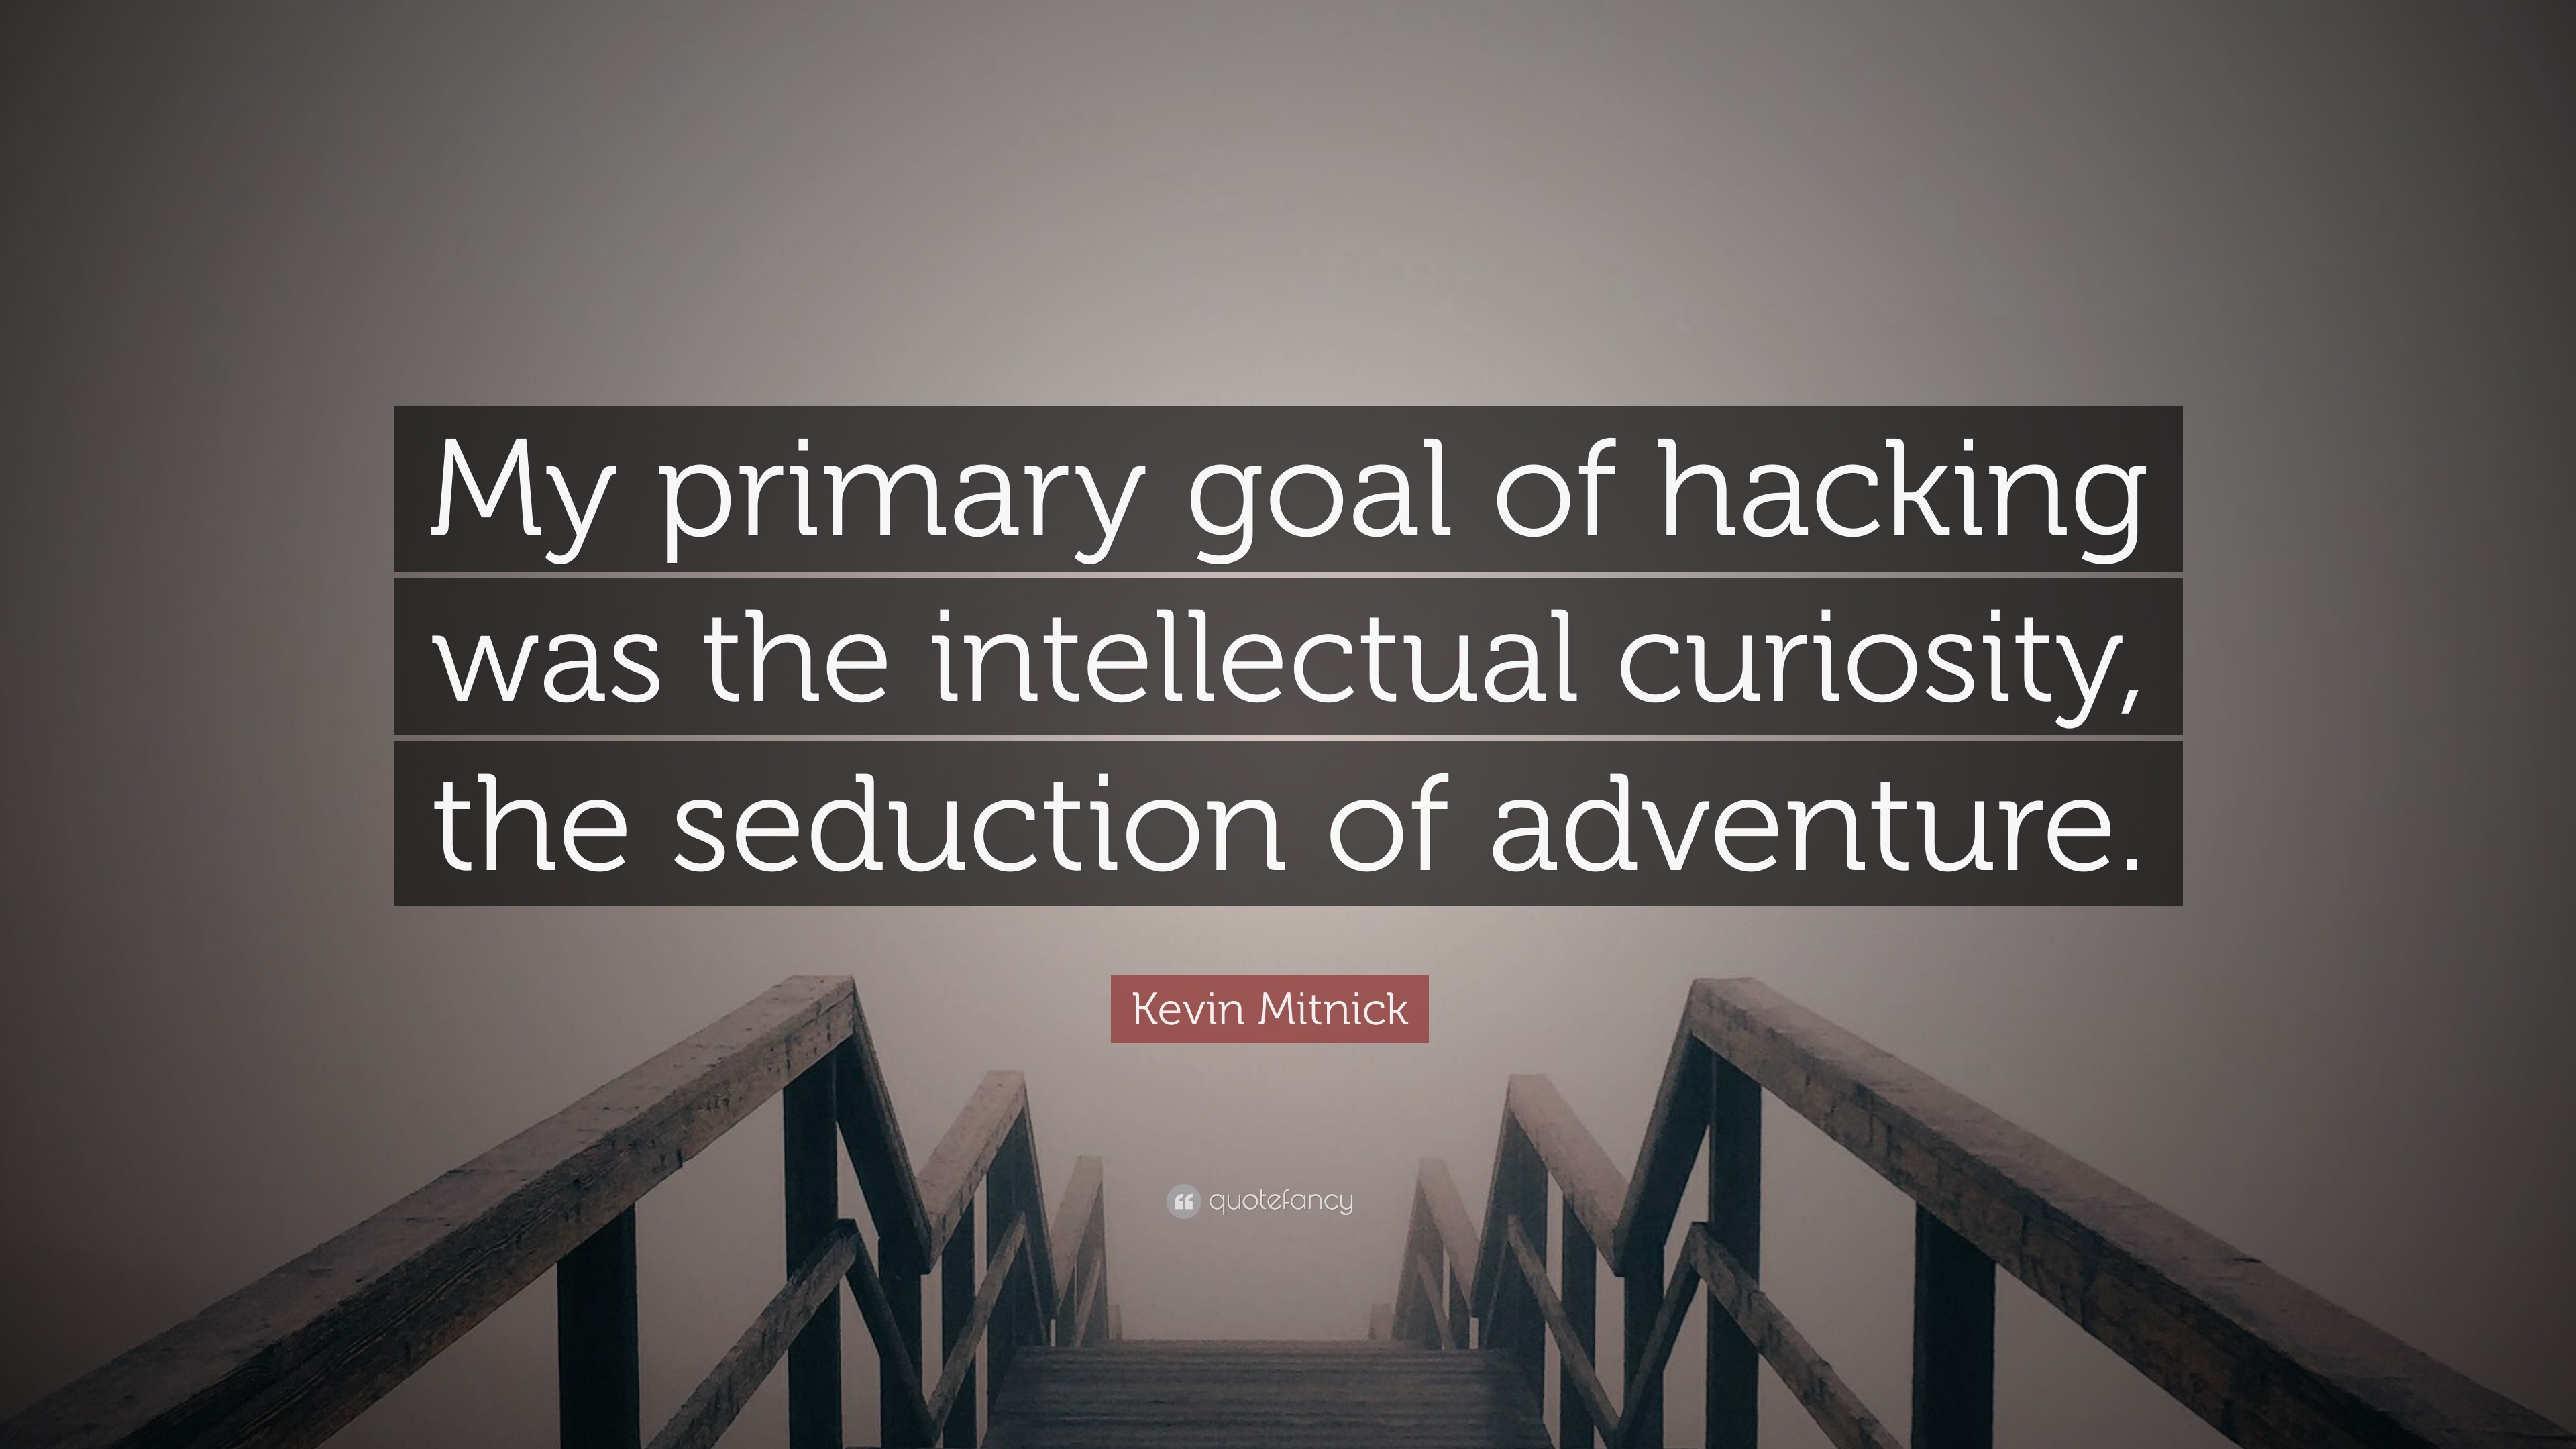 Kevin Mitnick Quotes (61 wallpapers) - Quotefancy